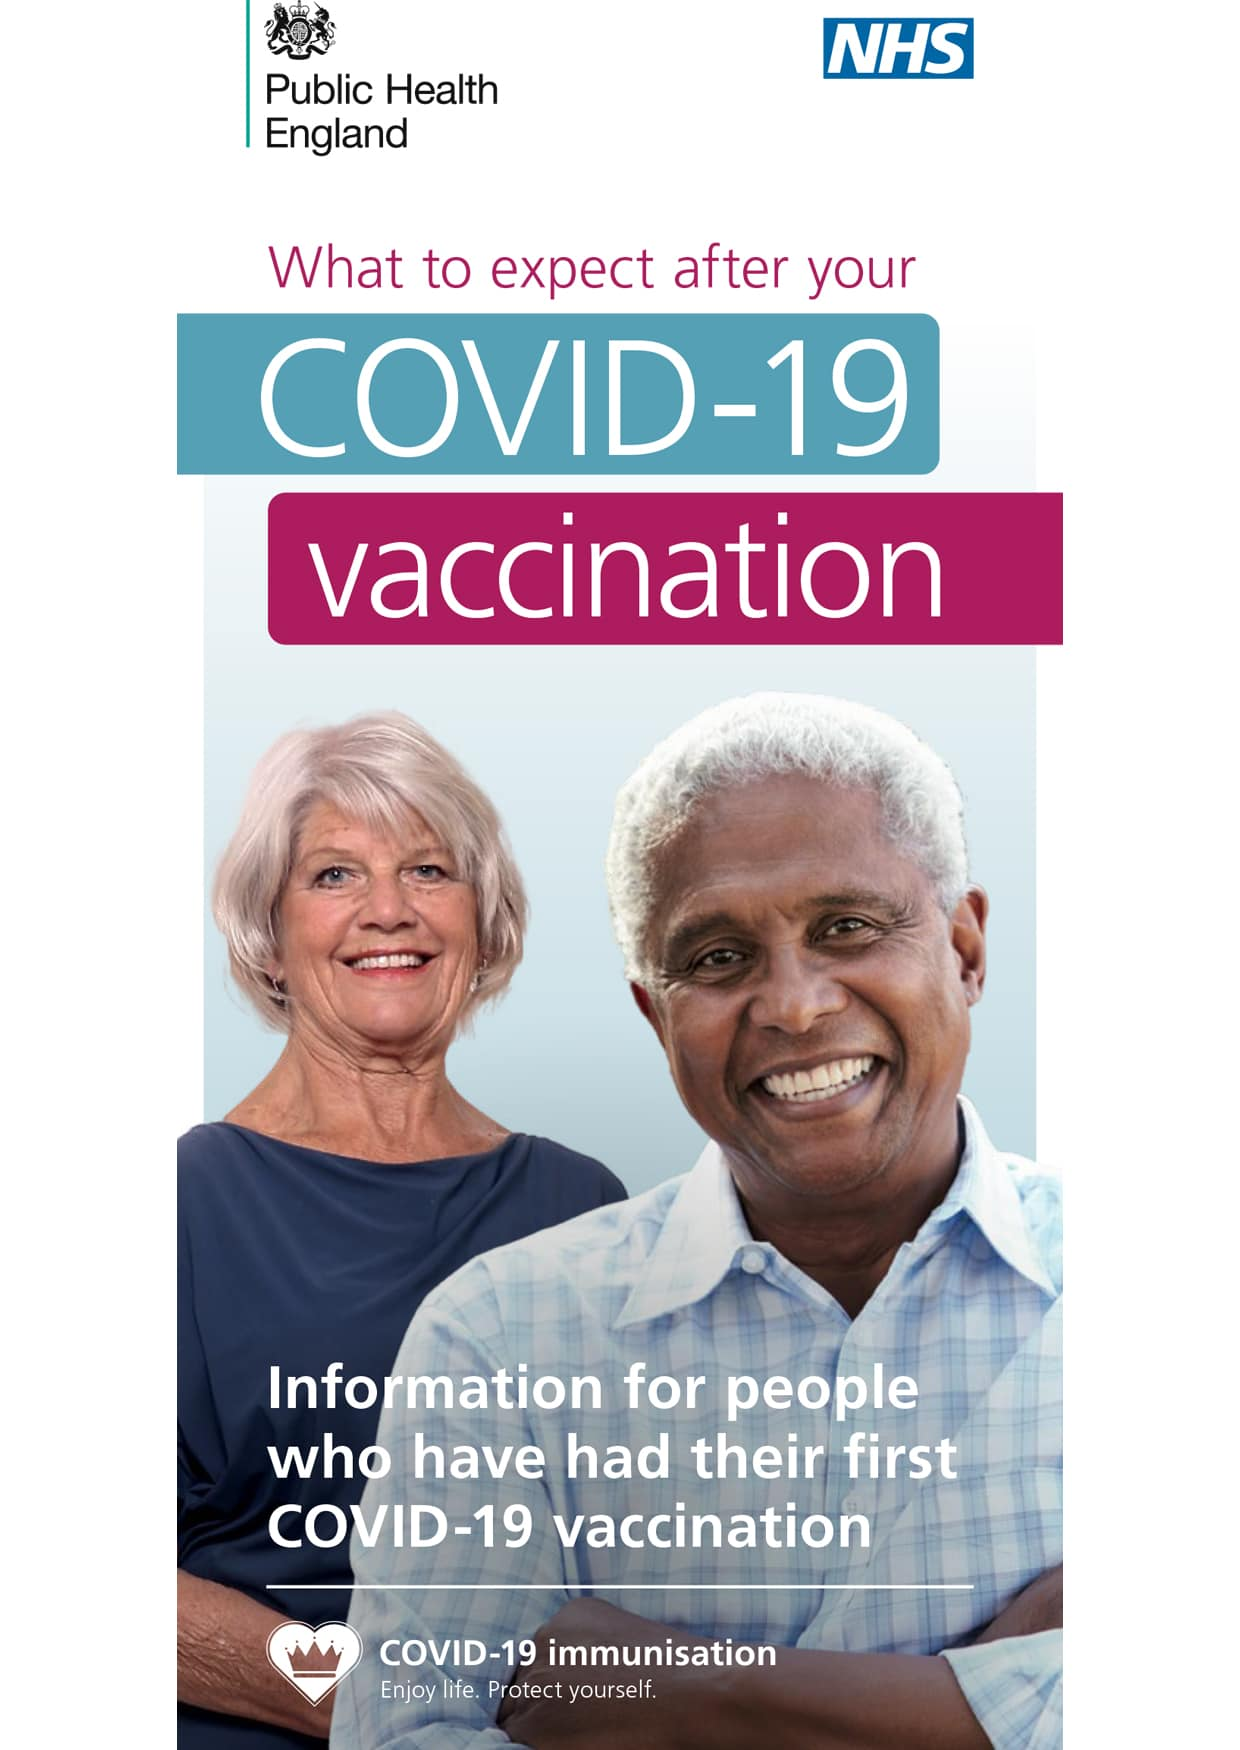 Covid-19 Vaccination Guide for Adults